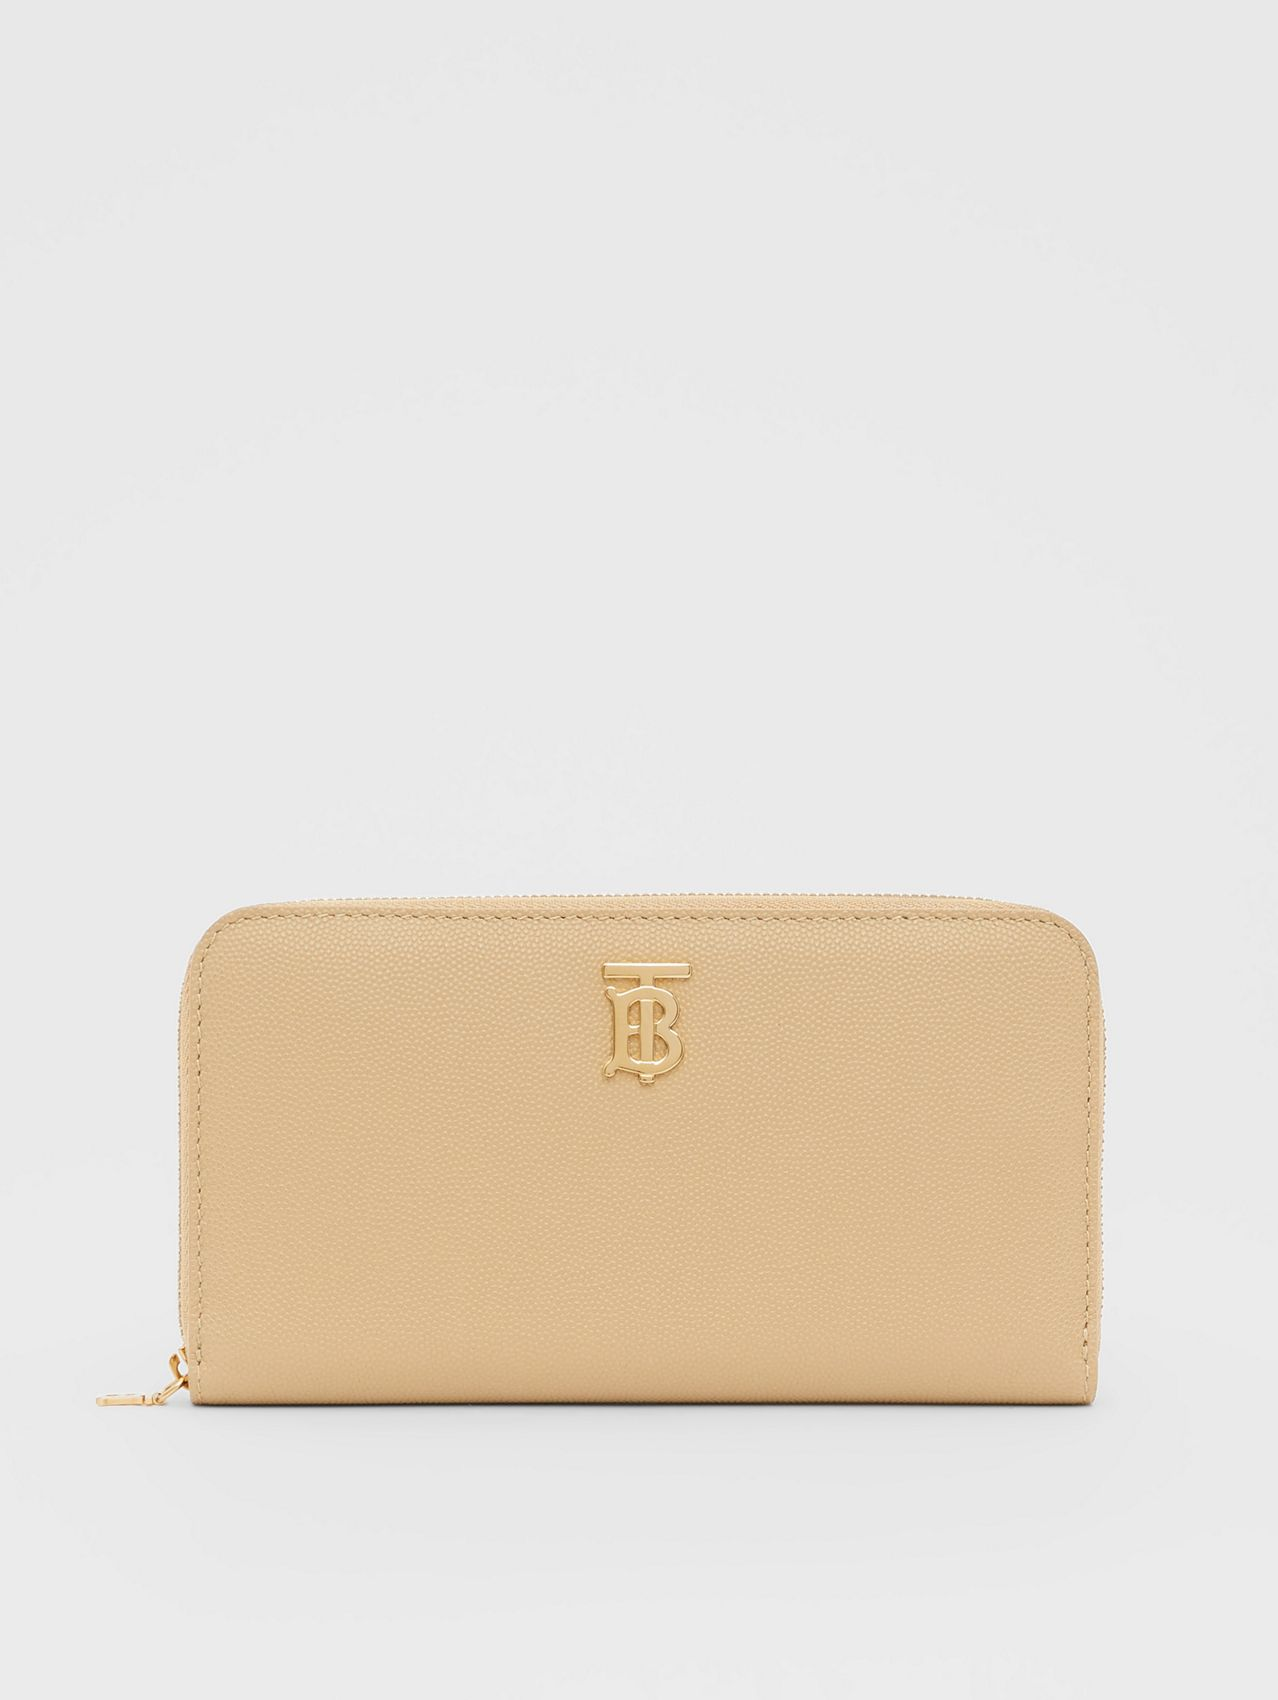 Monogram Motif Grainy Leather Ziparound Wallet in Archive Beige